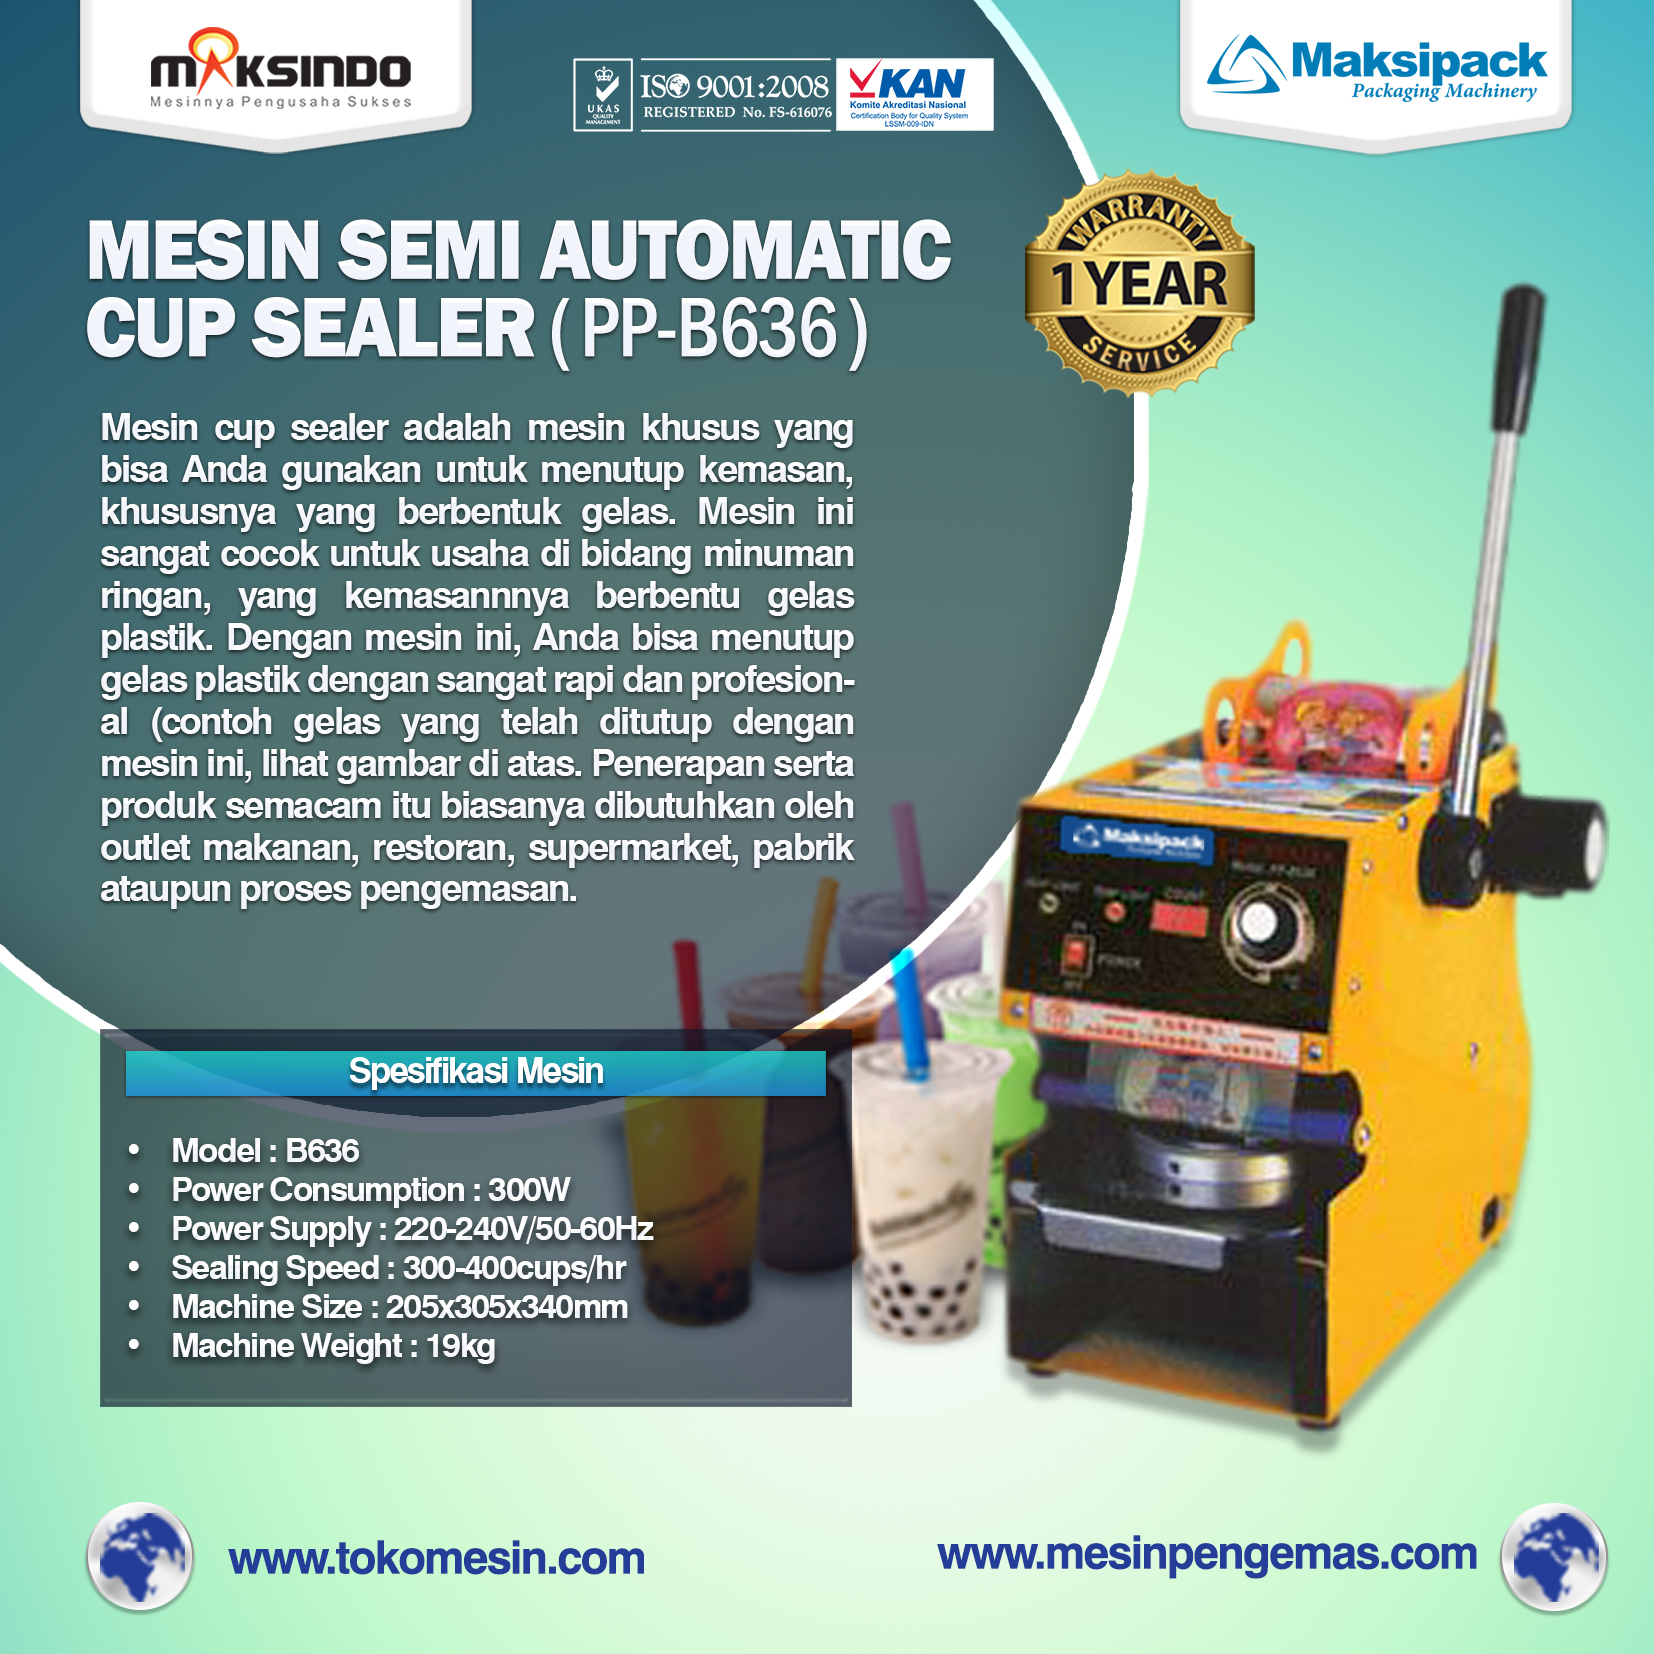 Semi Automatic Cup Sealer (PP-B636)